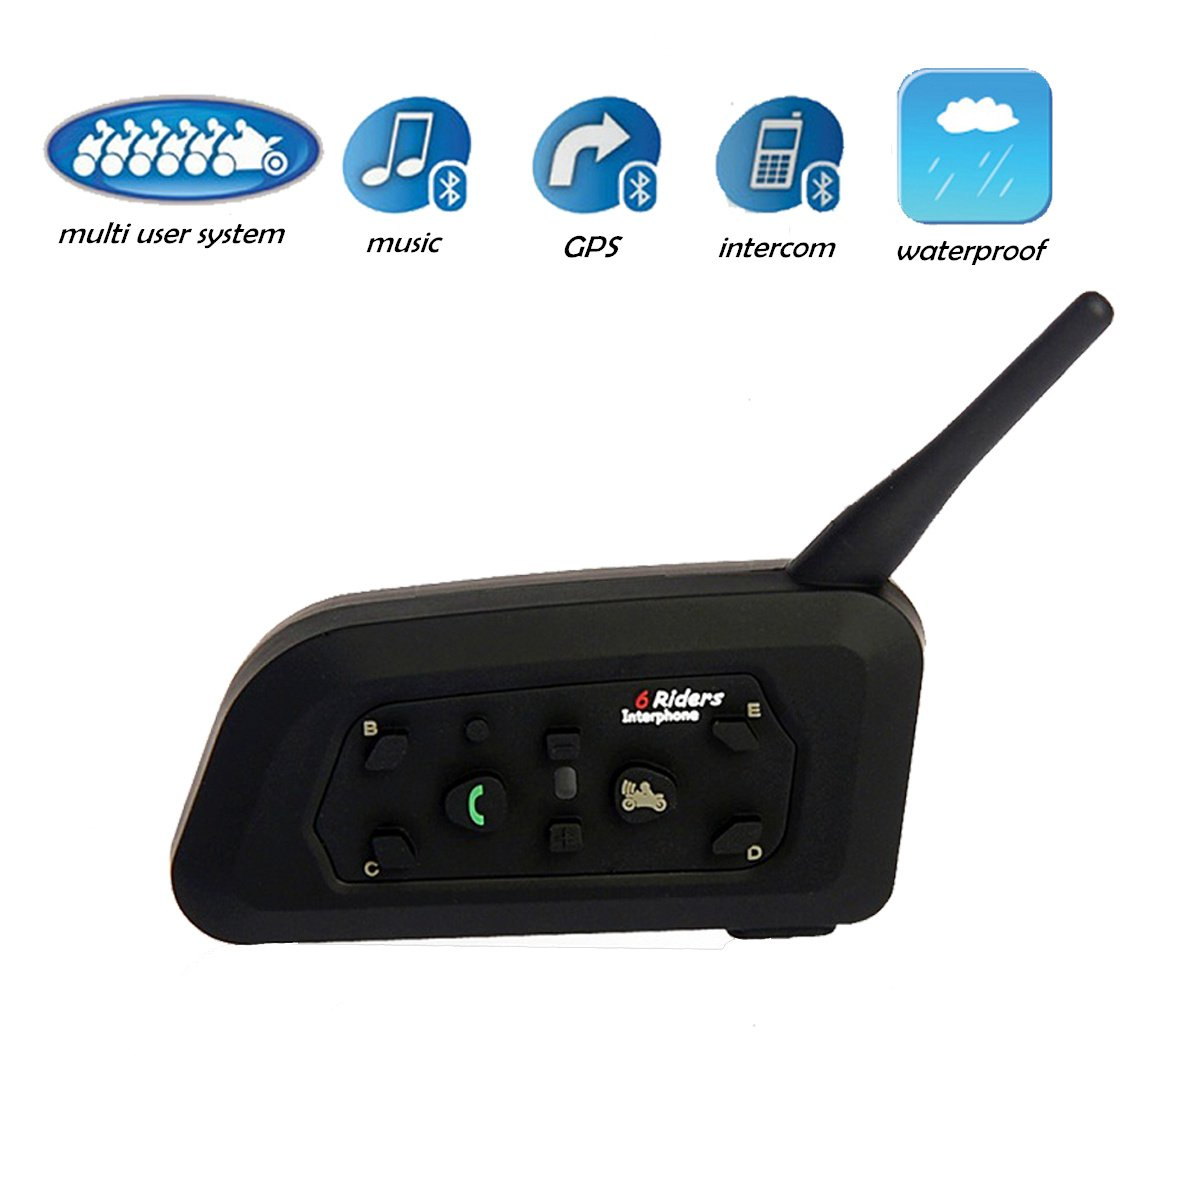 Motorcycle Intercom Helmet Accessories Communication Headsets/Bluetooth 3.0/Multi User System/Waterproof